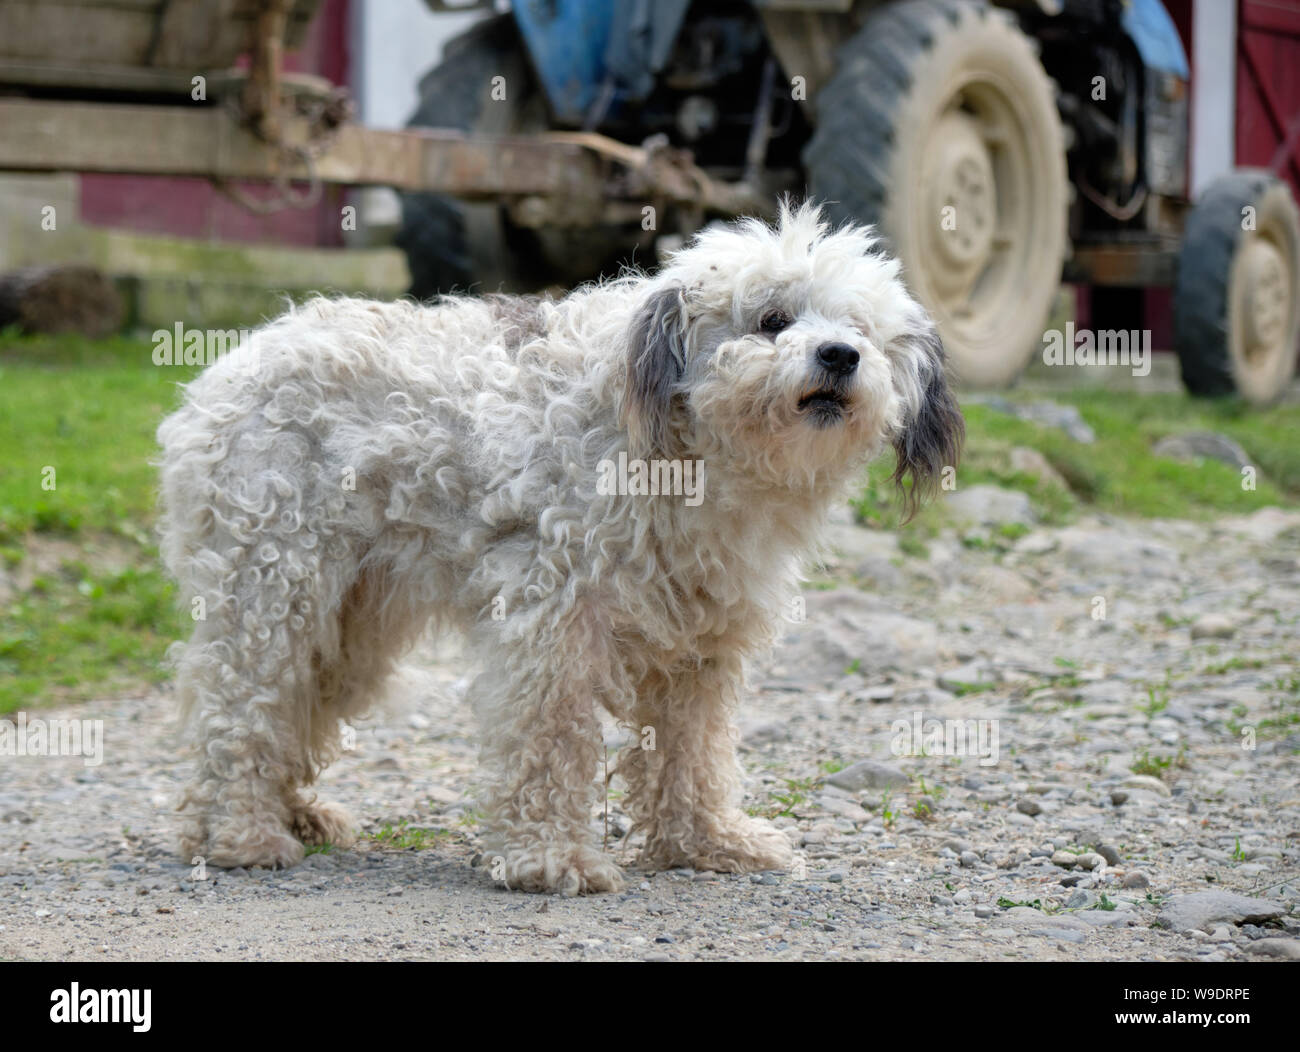 white-hair-fluffy-farm-dog-standing-guard-by-an-old-tractor-seen-in-background-W9DRPE.jpg